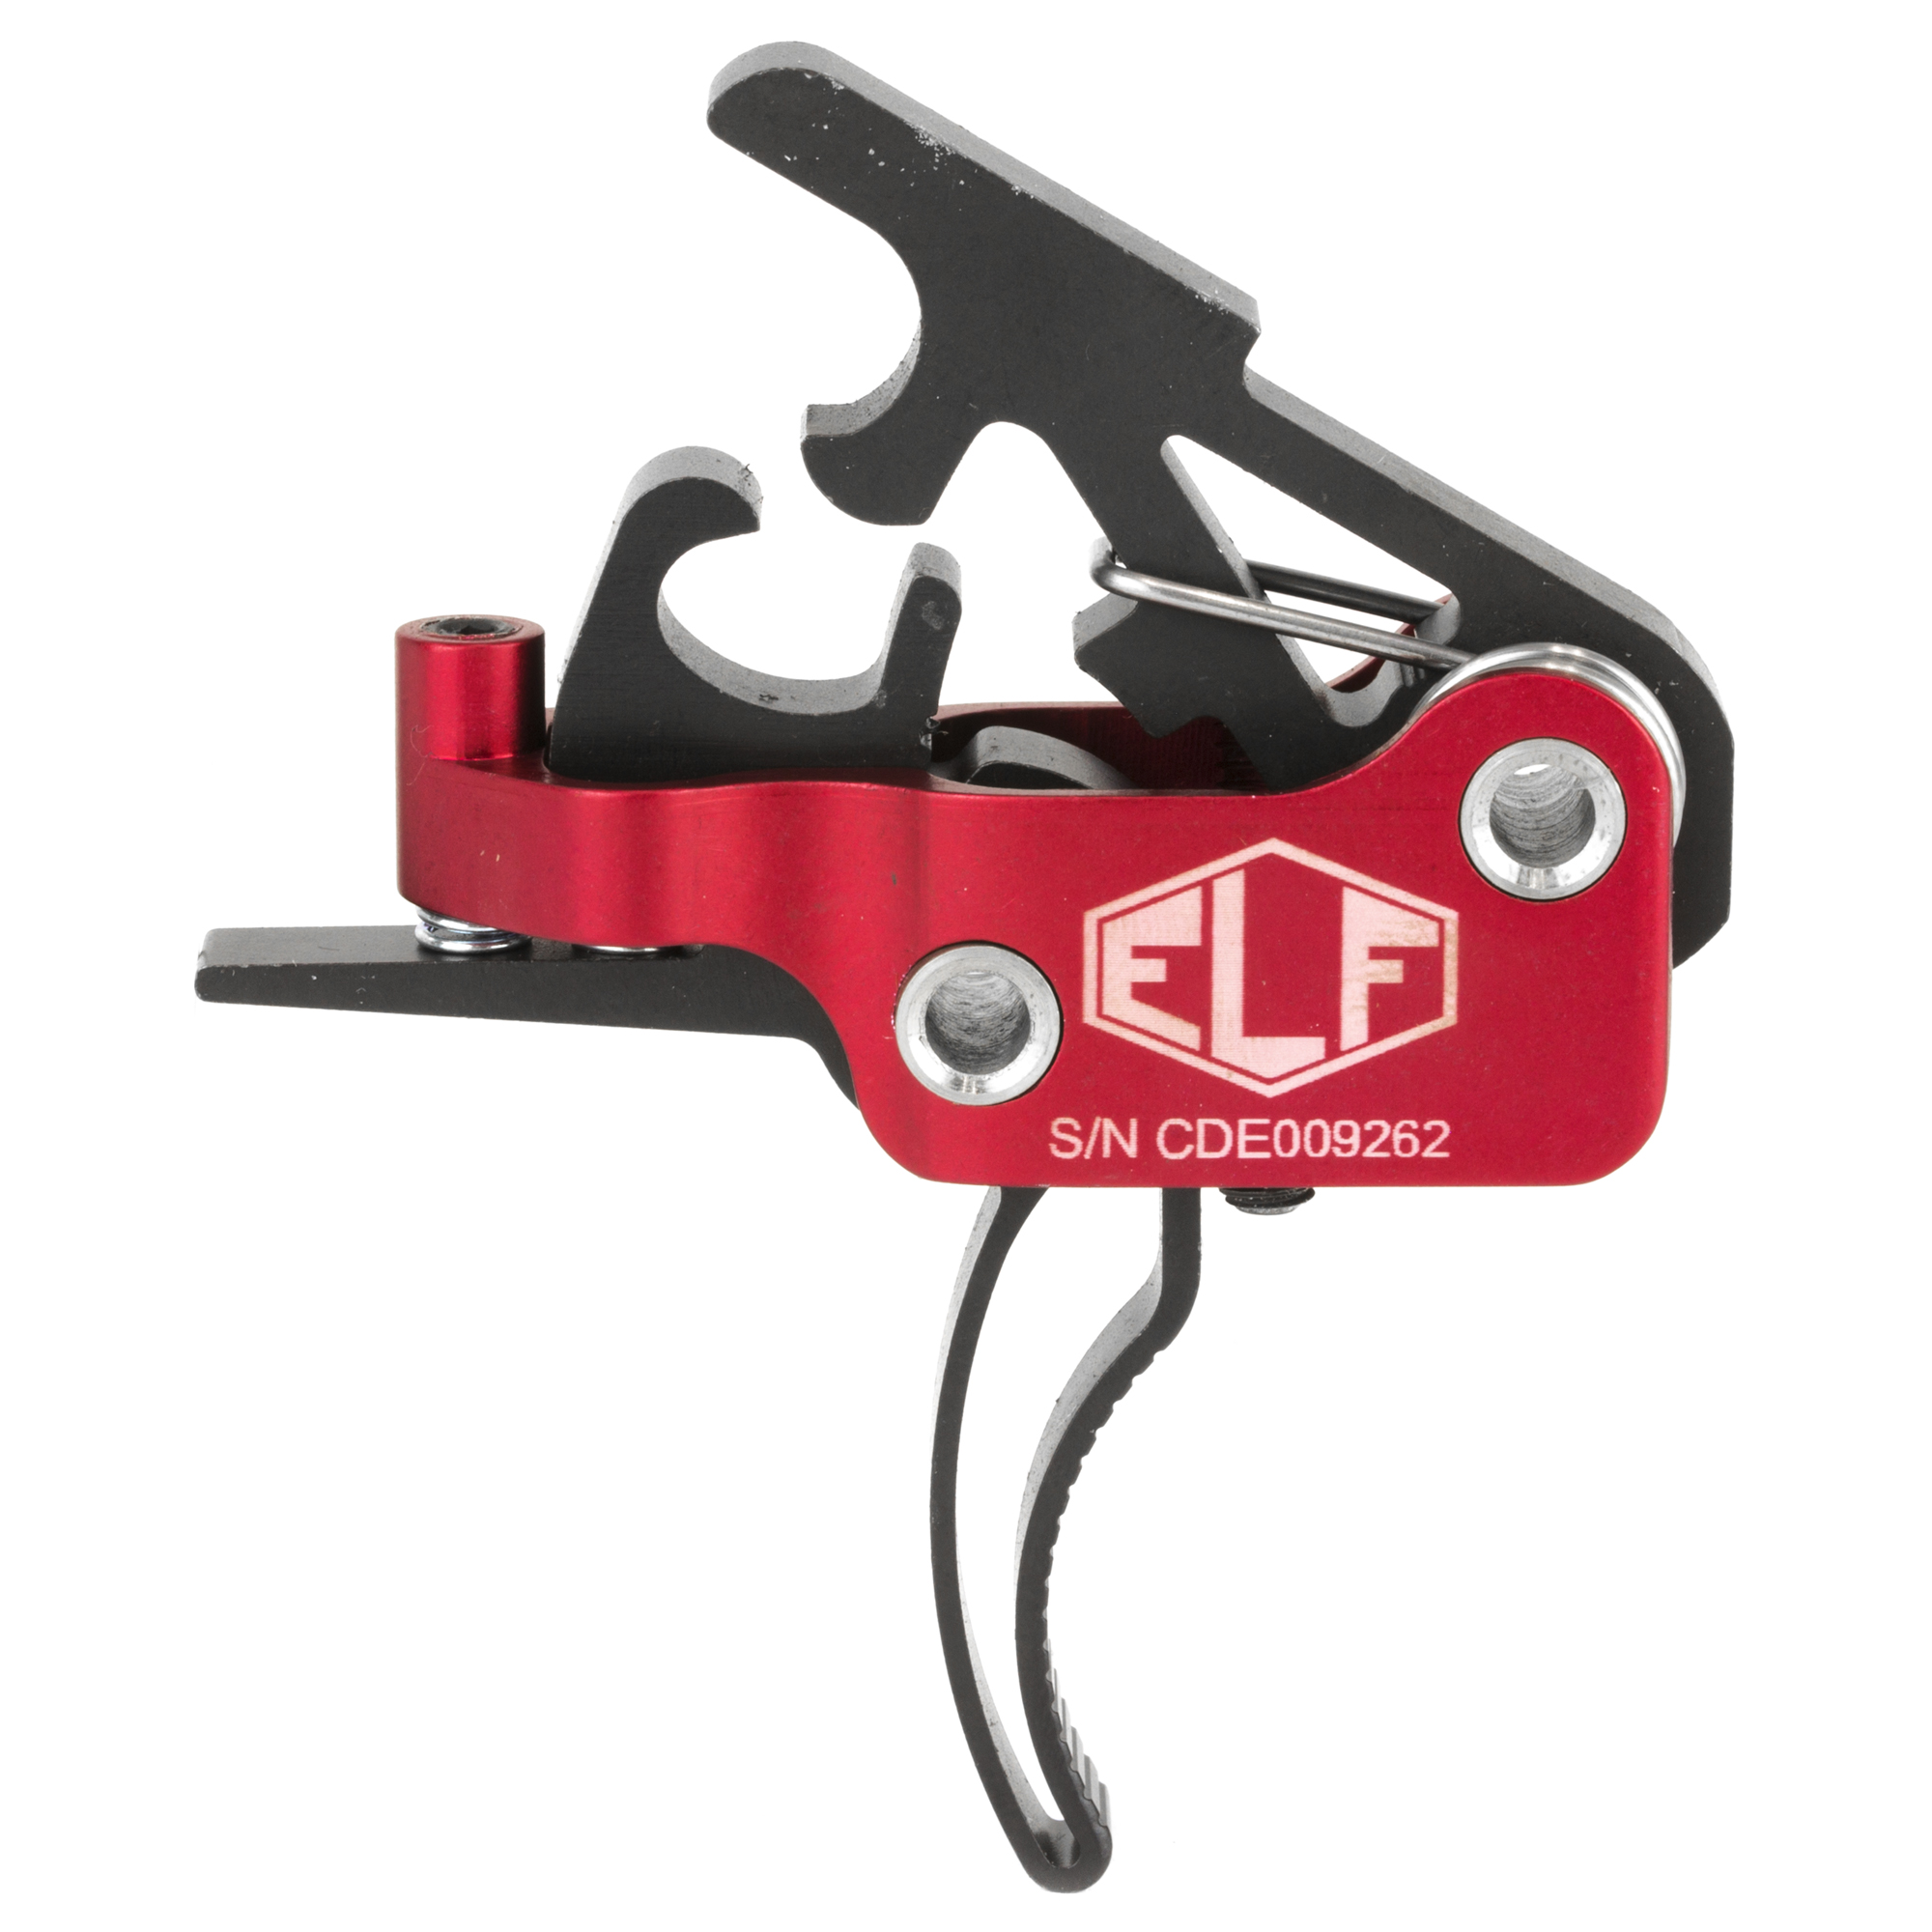 """The ELF 3-Gun Drop-In Trigger has been built for winning competitions. The only AR-15 trigger using aerospace grade sealed bearings"""" making for an incredibly smooth and fast trigger pull. The amazingly short take-up"""" glass-rod crisp break and next to zero over-travel can be compared to the finest custom 1911 triggers. Adjustability puts you in charge based on your current use. If you are looking for the finest adjustable trigger for your AR-15 platform"""" this is the trigger system for you."""